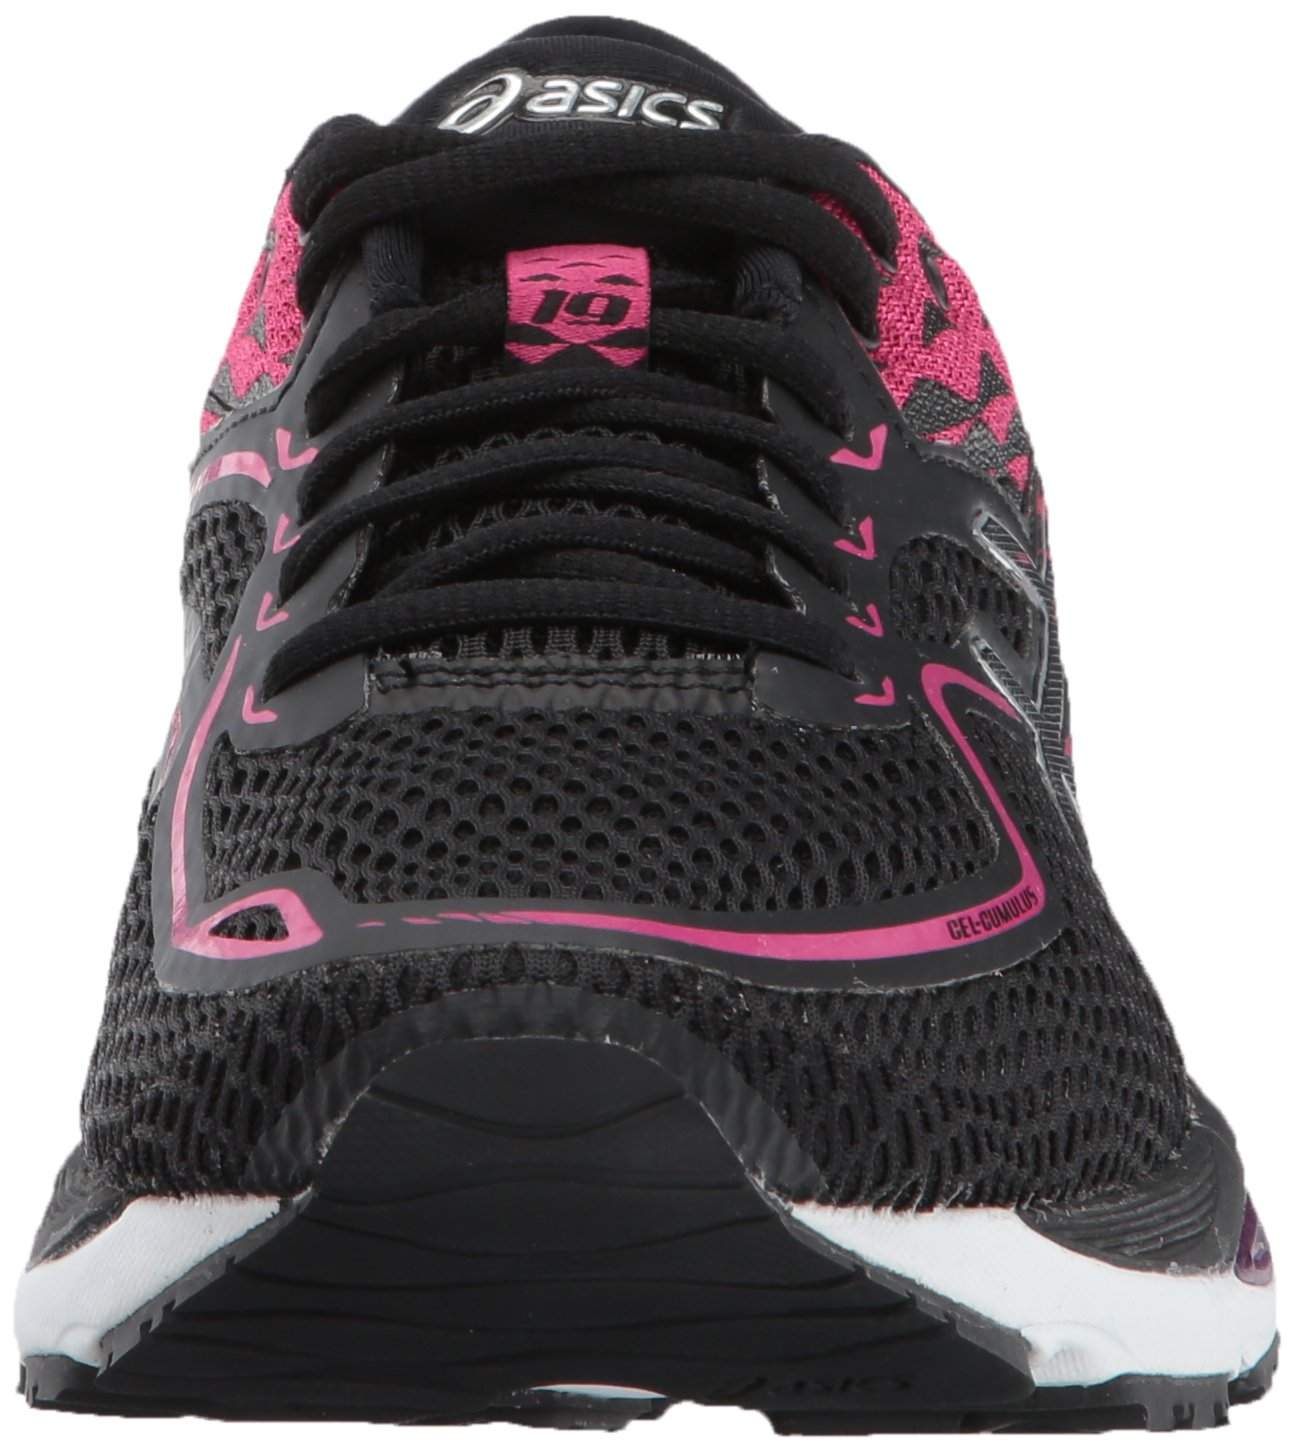 ASICS Women's Gel-Cumulus 19 US|Black/Silver/Ink Running Shoe B01MSJHH4I 11.5 B(M) US|Black/Silver/Ink 19 Peacoat 79182f